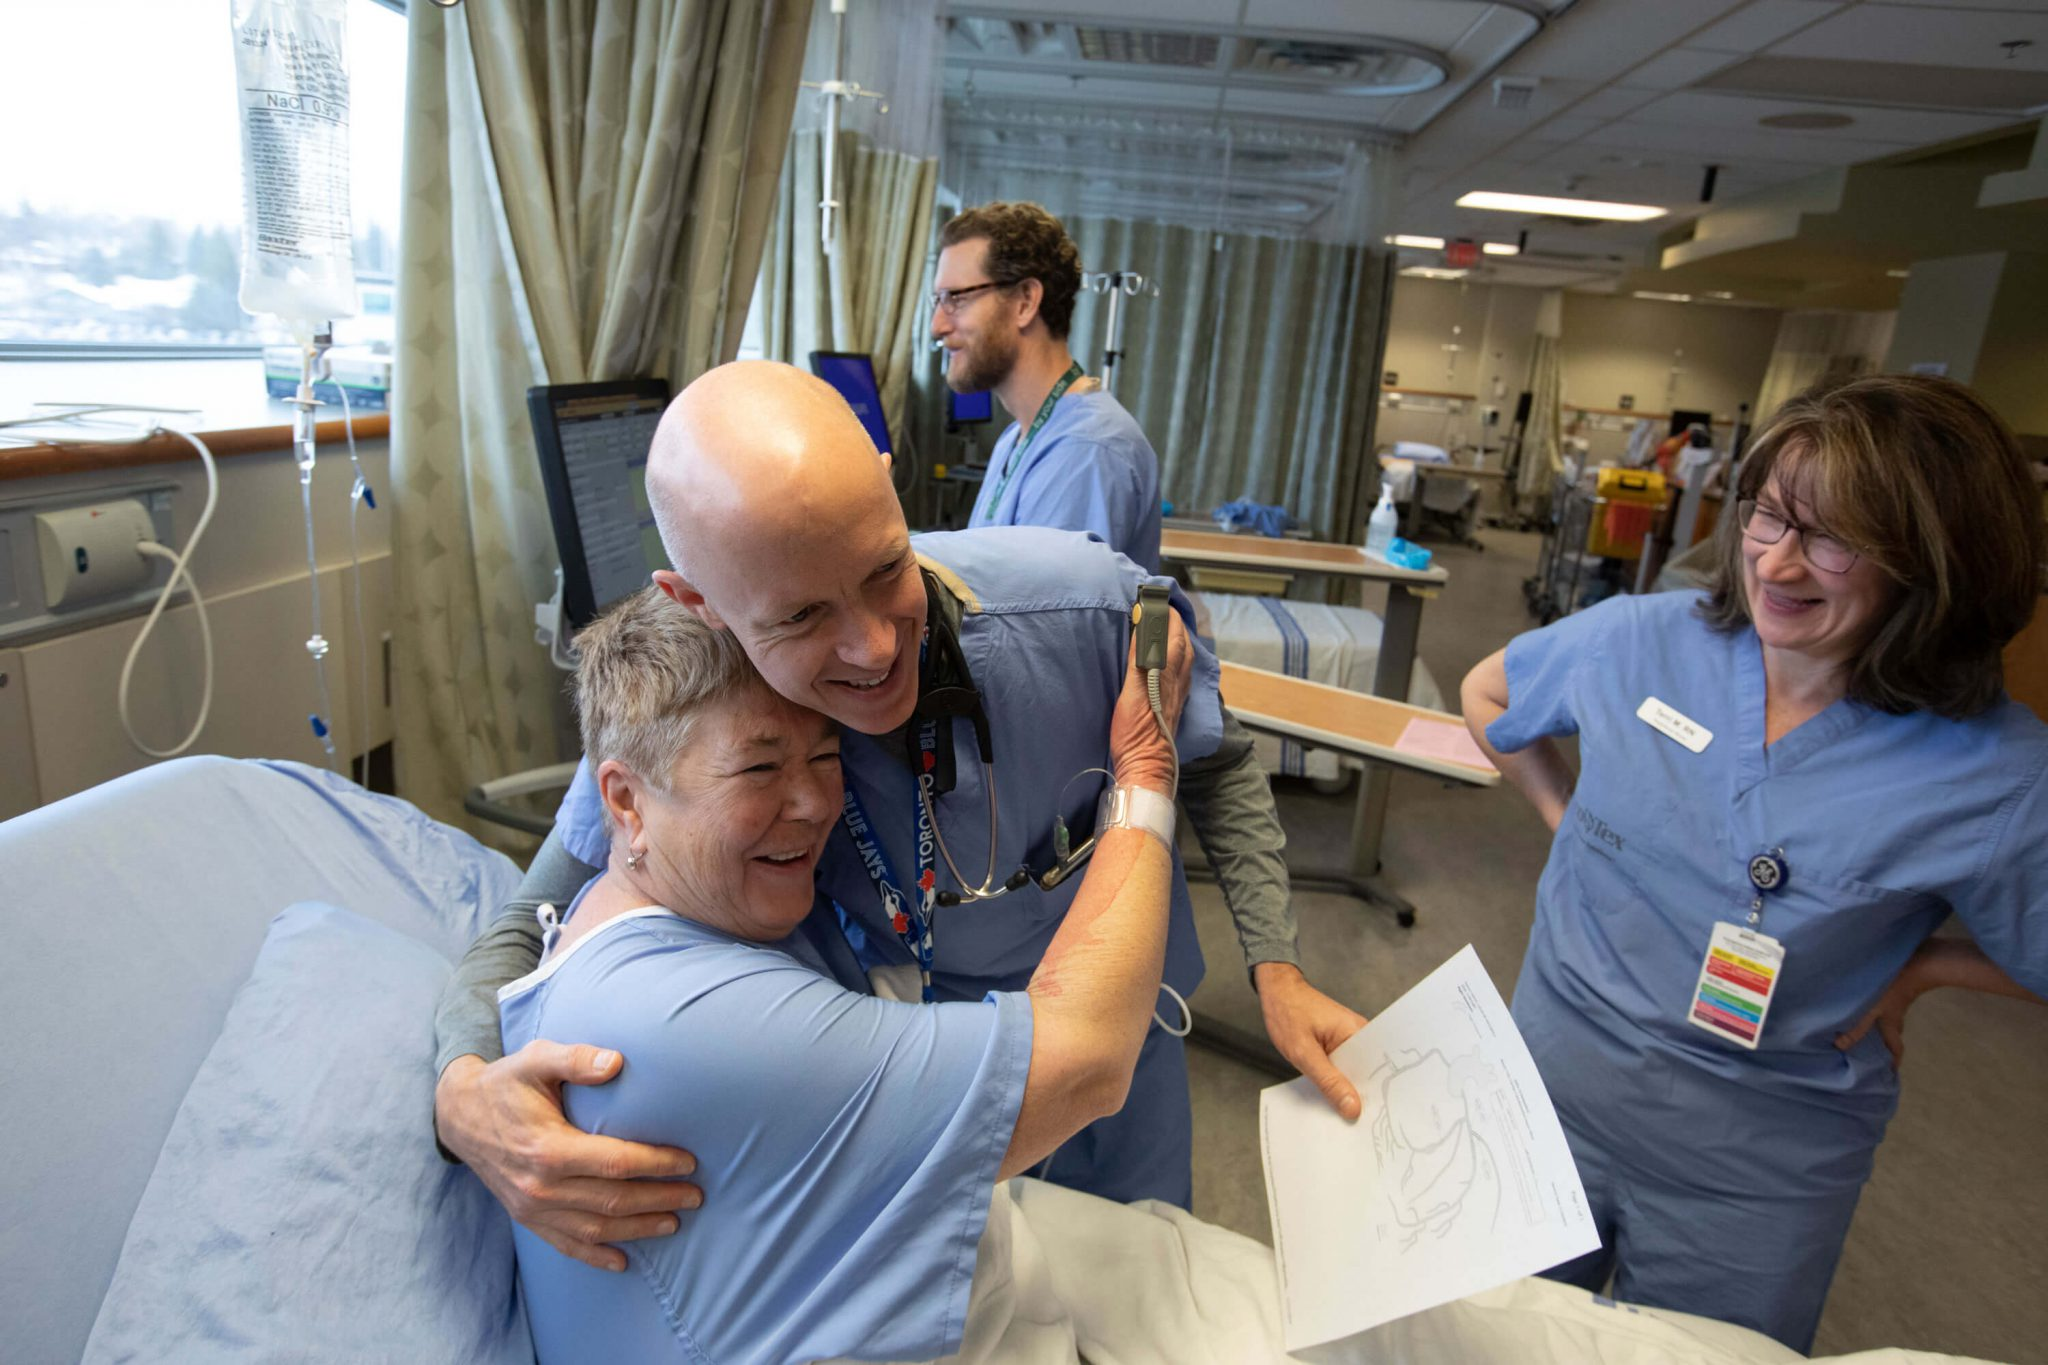 Cardiac doctor hugging patient at bedside